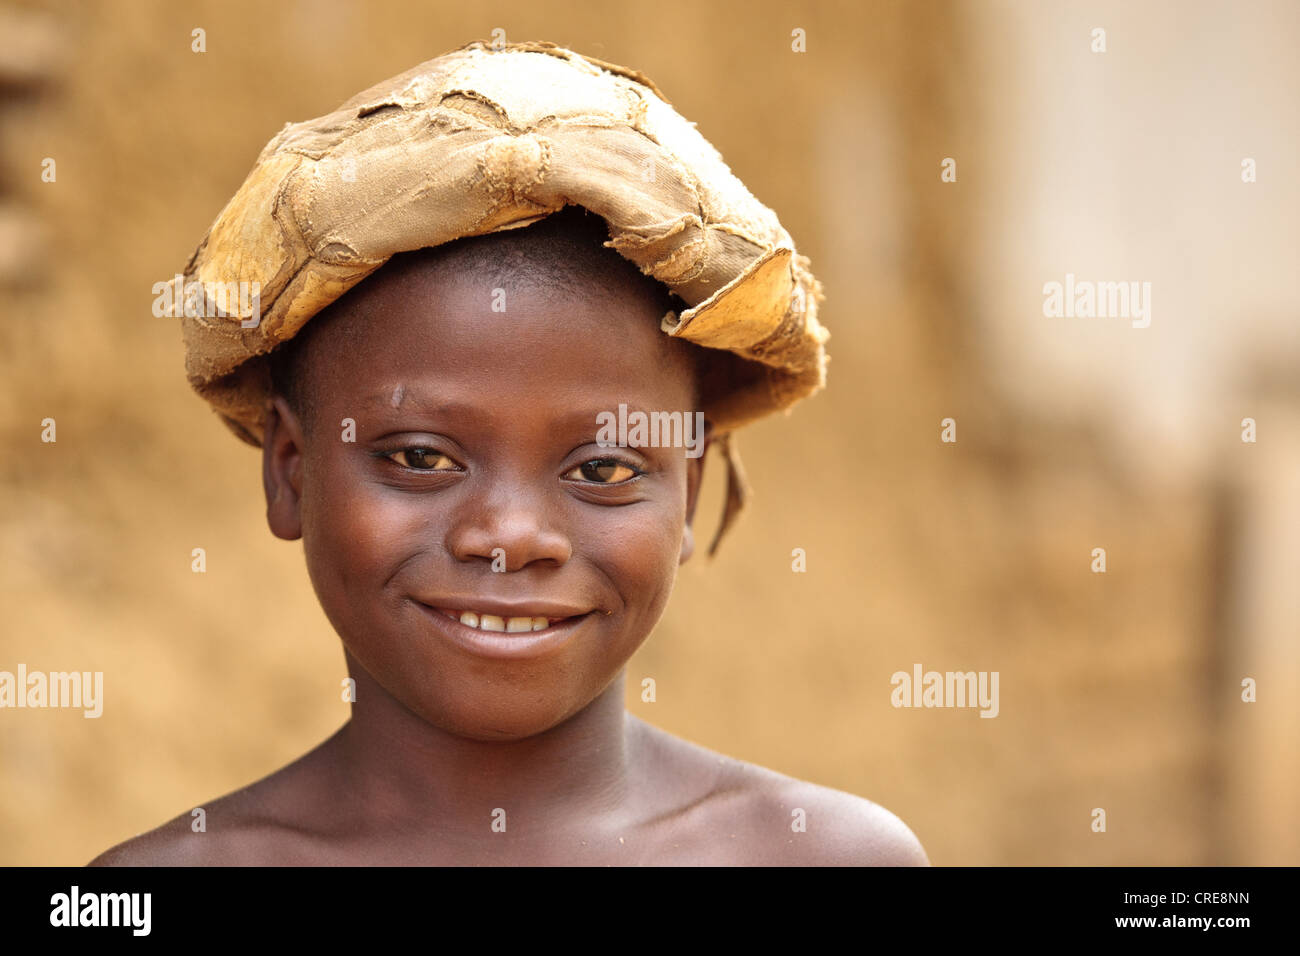 Portrait of a boy with a deflated football on his head in the village of Kawejah, Grand Cape Mount county, Liberia - Stock Image